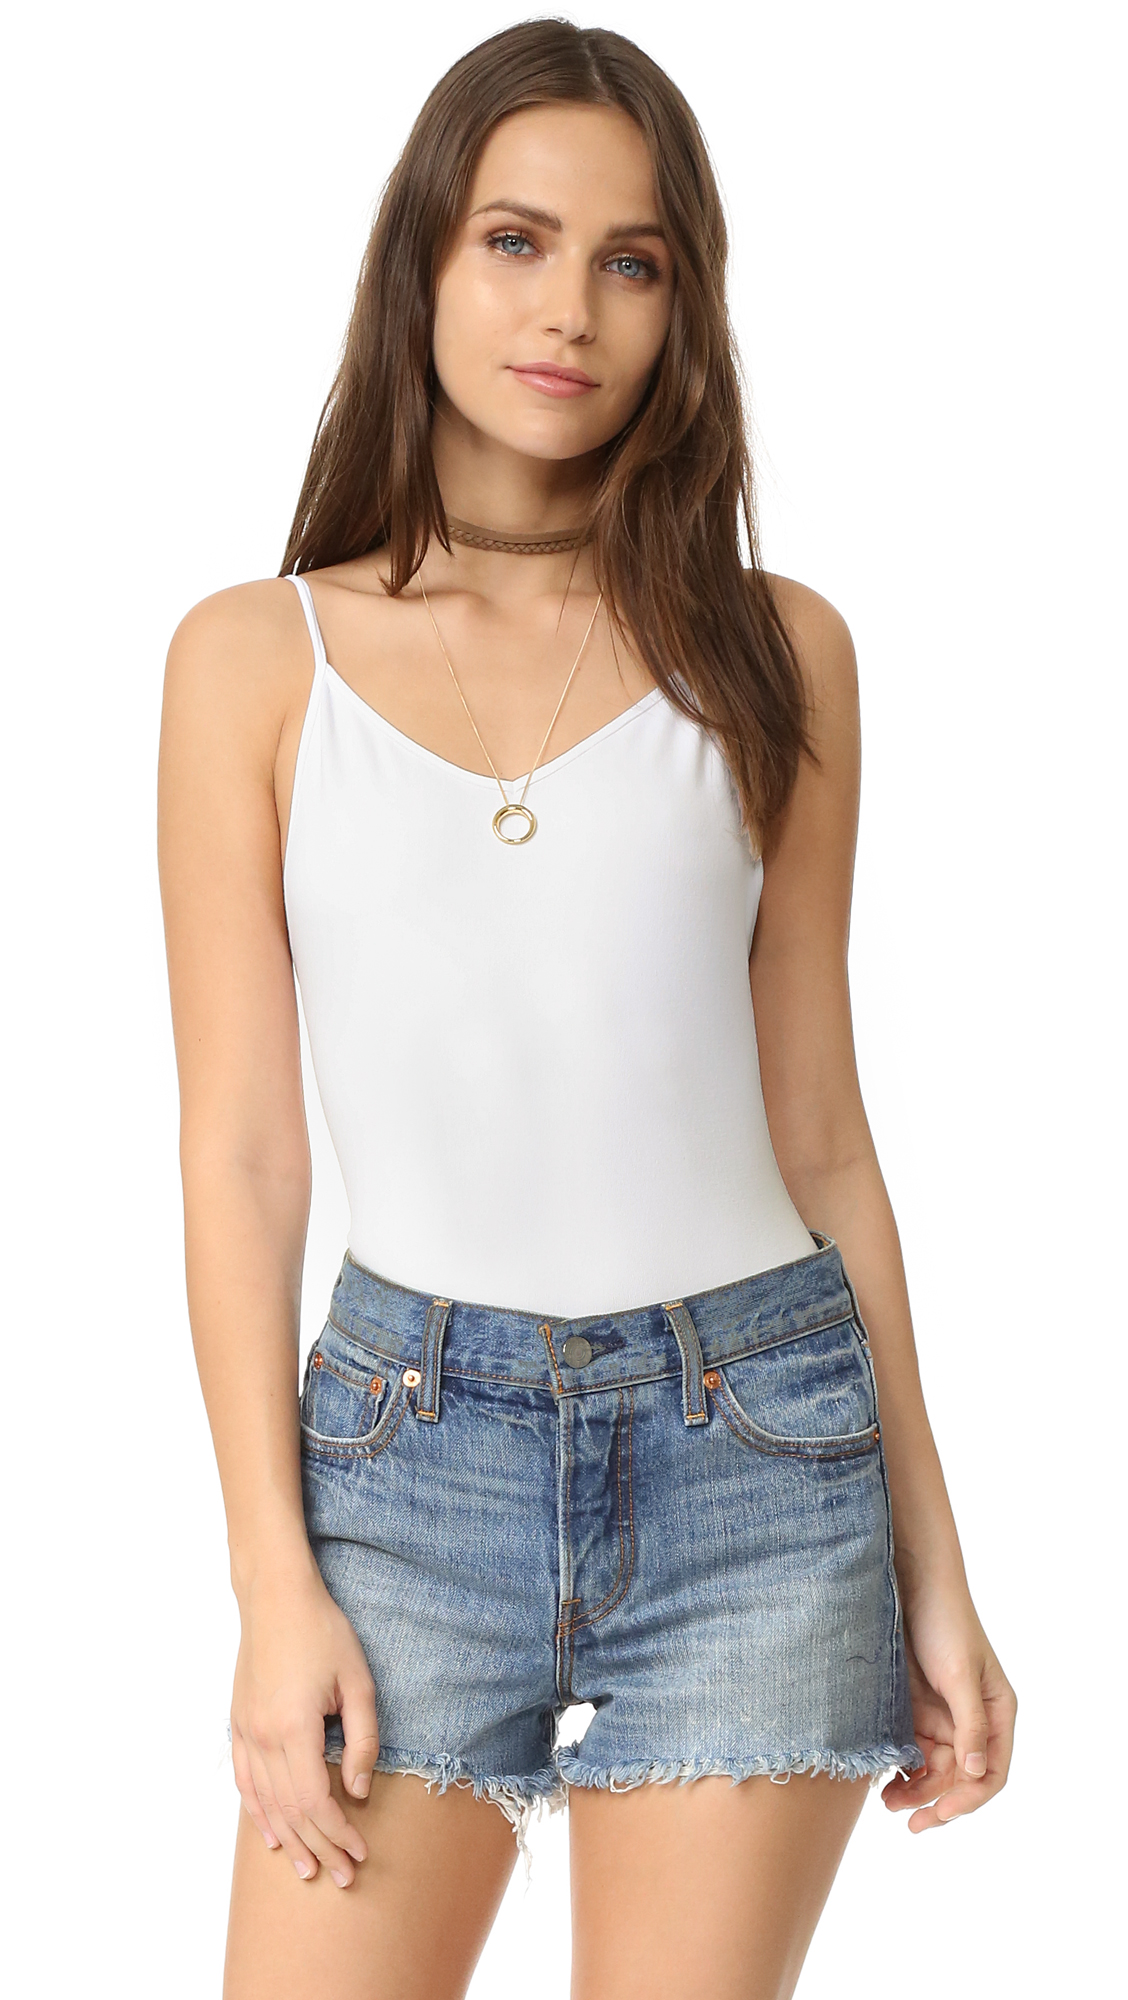 A smooth, lightweight Free People bodysuit. Adjustable spaghetti straps. Low back. Fabric: Smooth jersey. 92% nylon/8% spandex. Wash cold. Made in the USA. Size & Fit. Available sizes: M/L